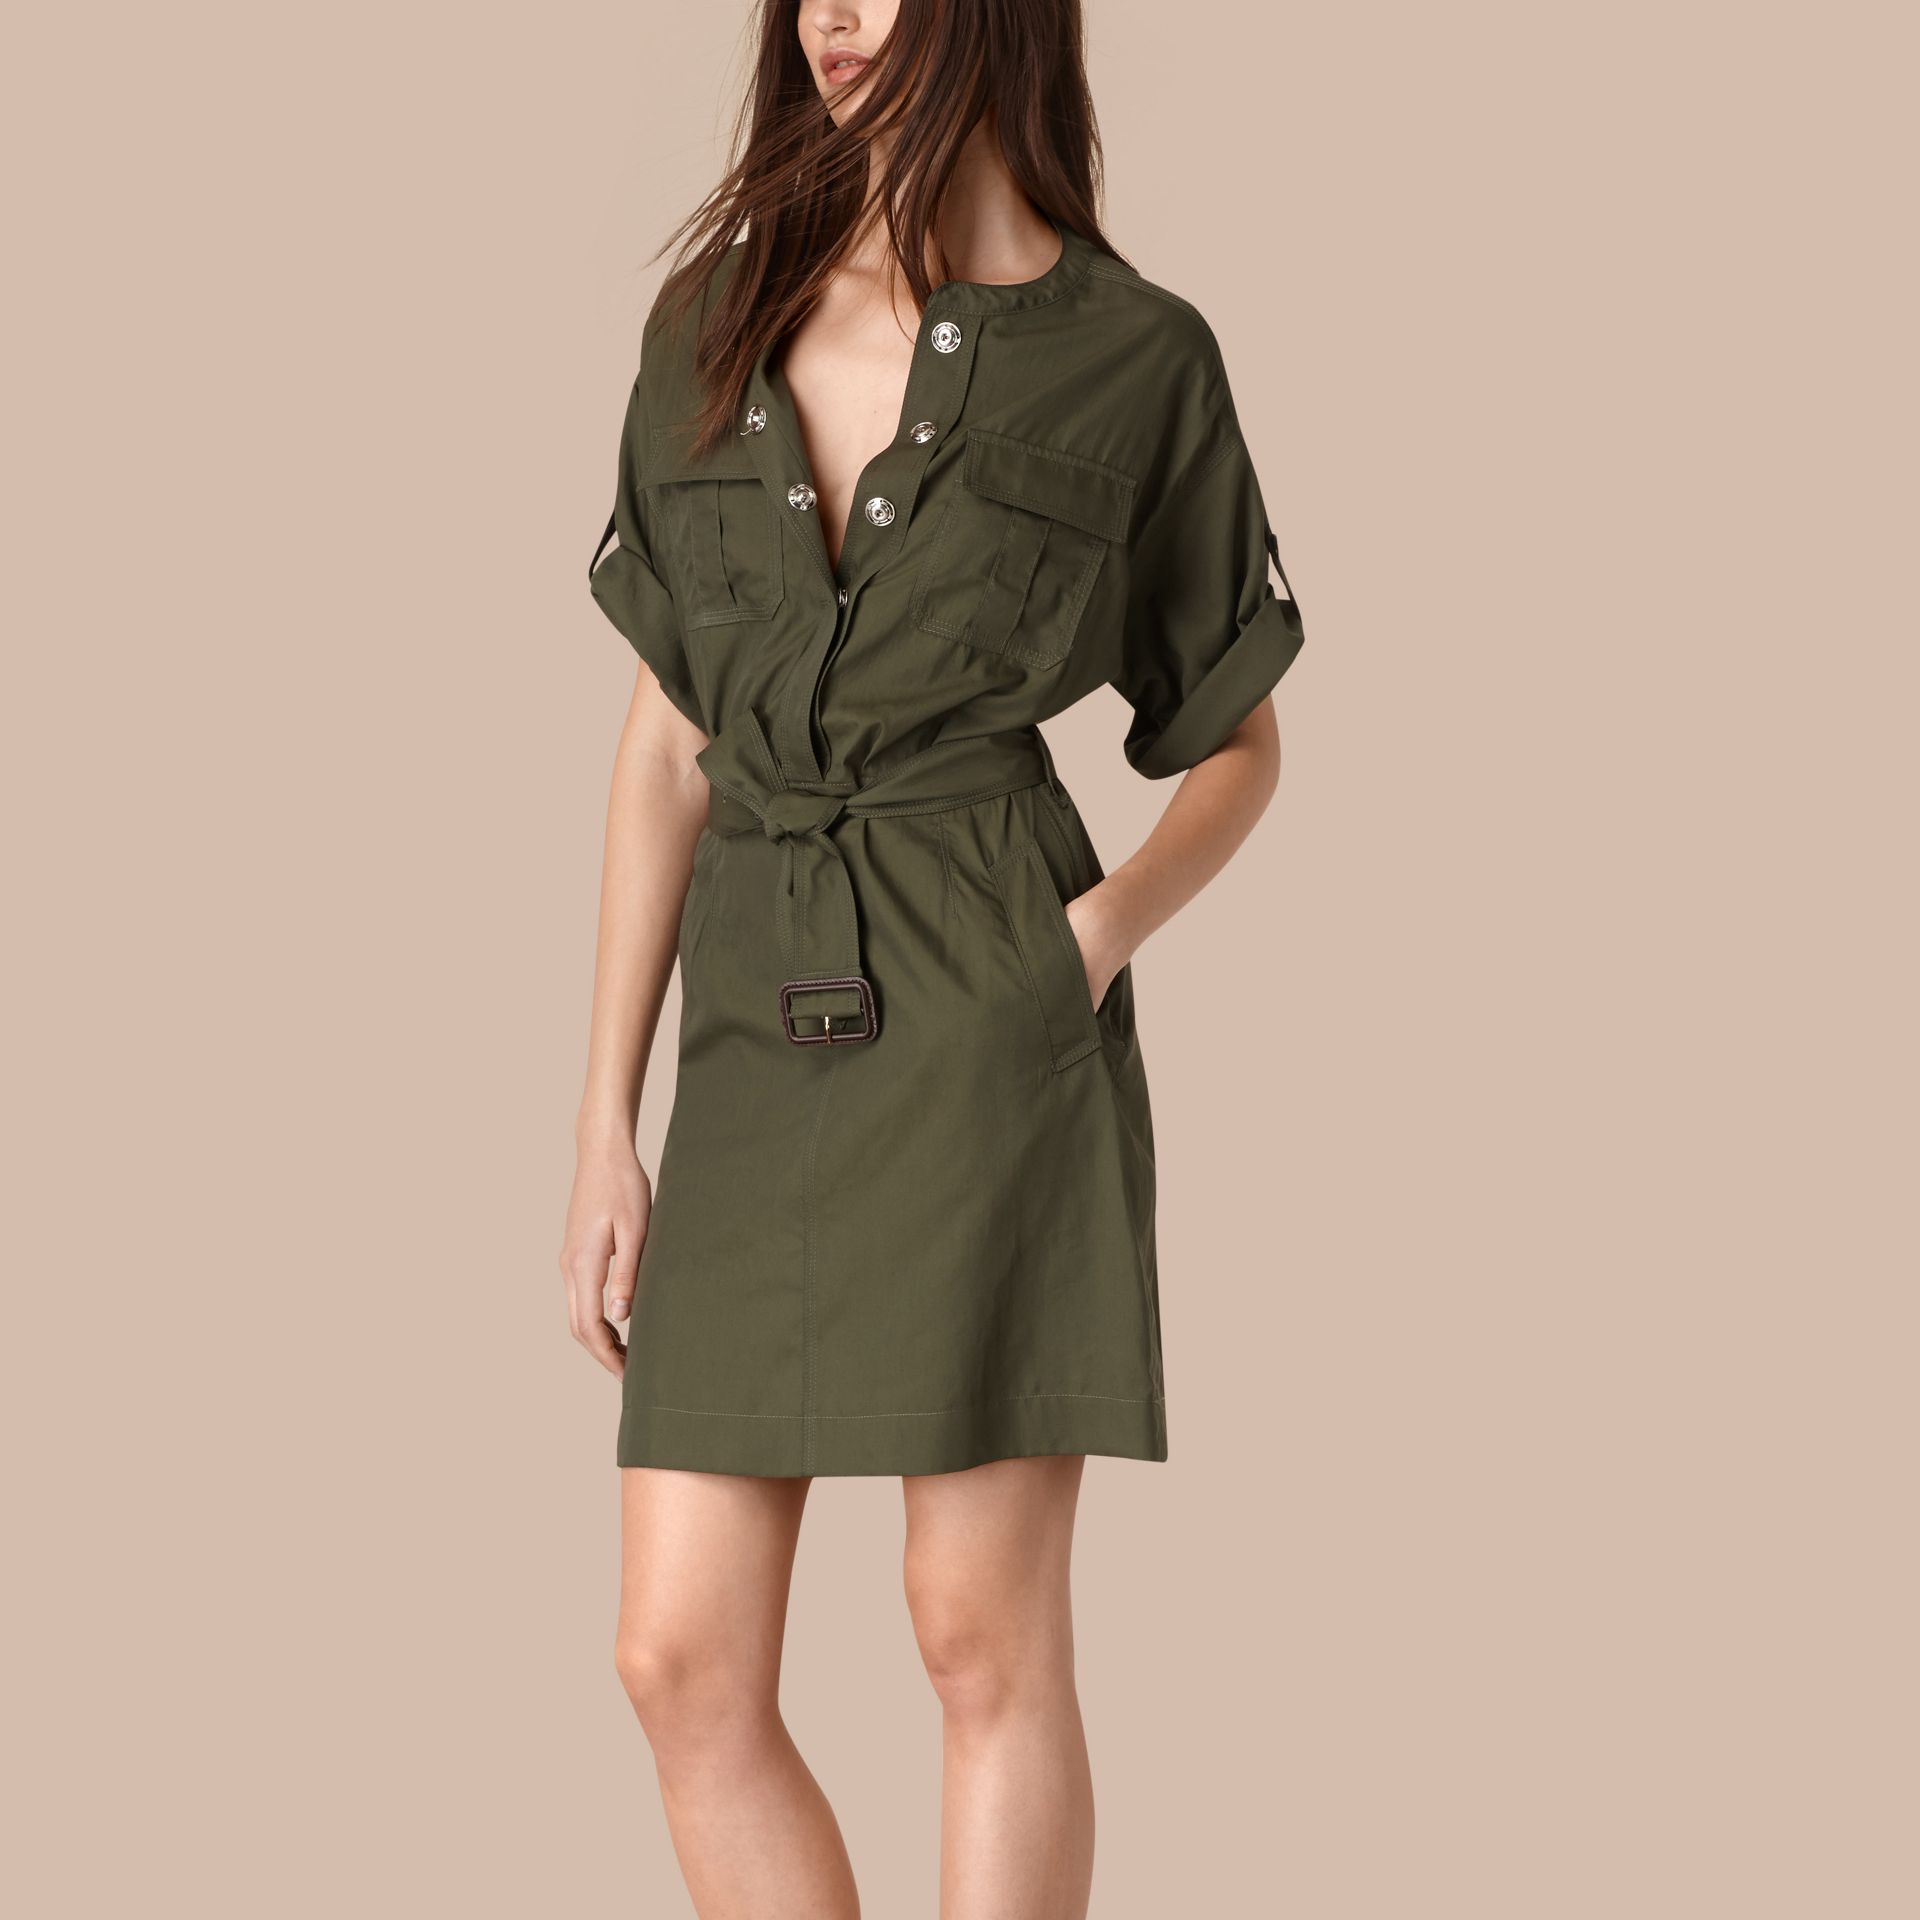 Olive Cotton and Silk Blend Military Dress Olive - gallery image 1